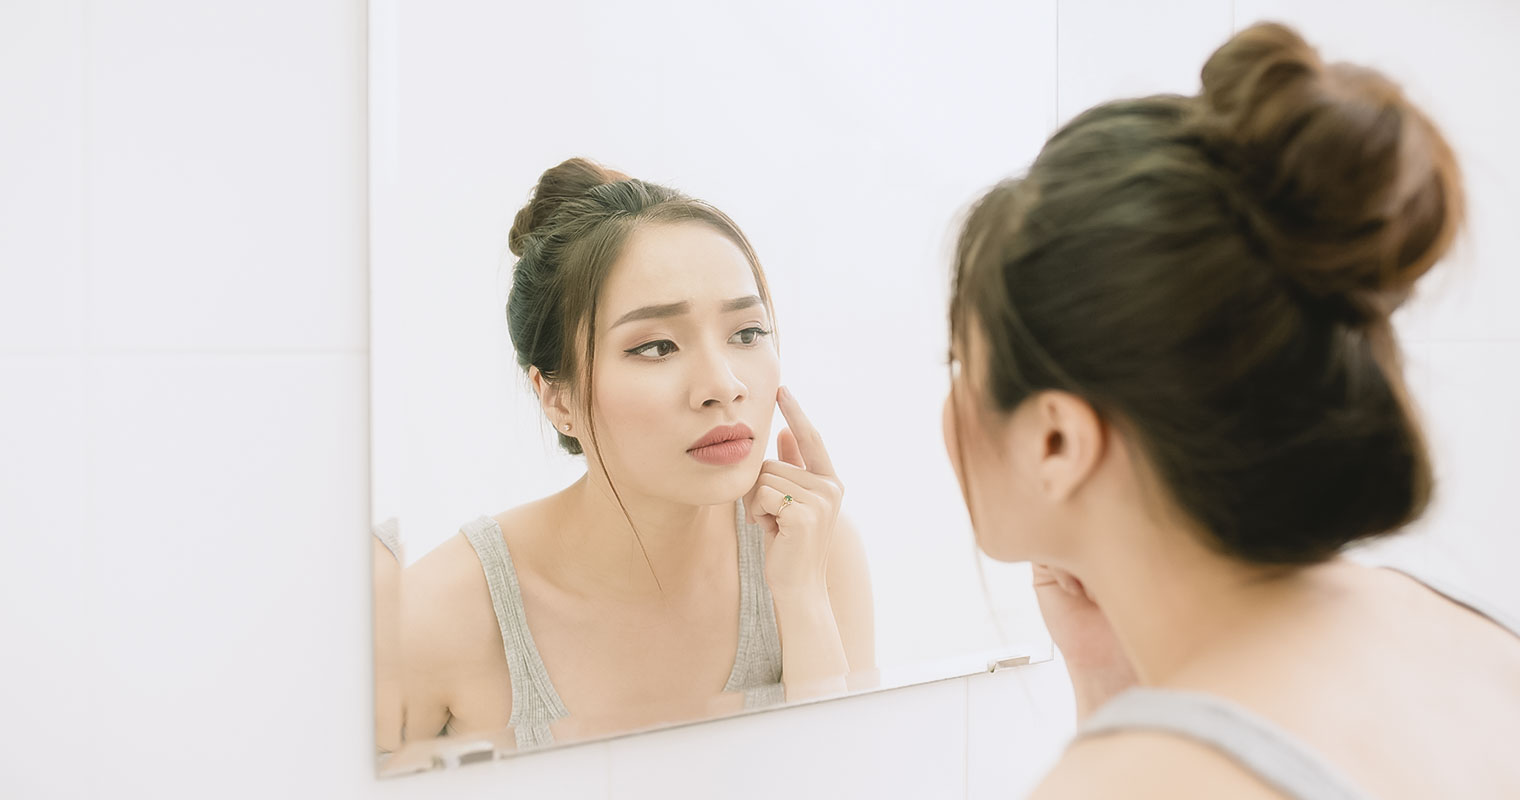 Girl looking at her breakout in front of mirror